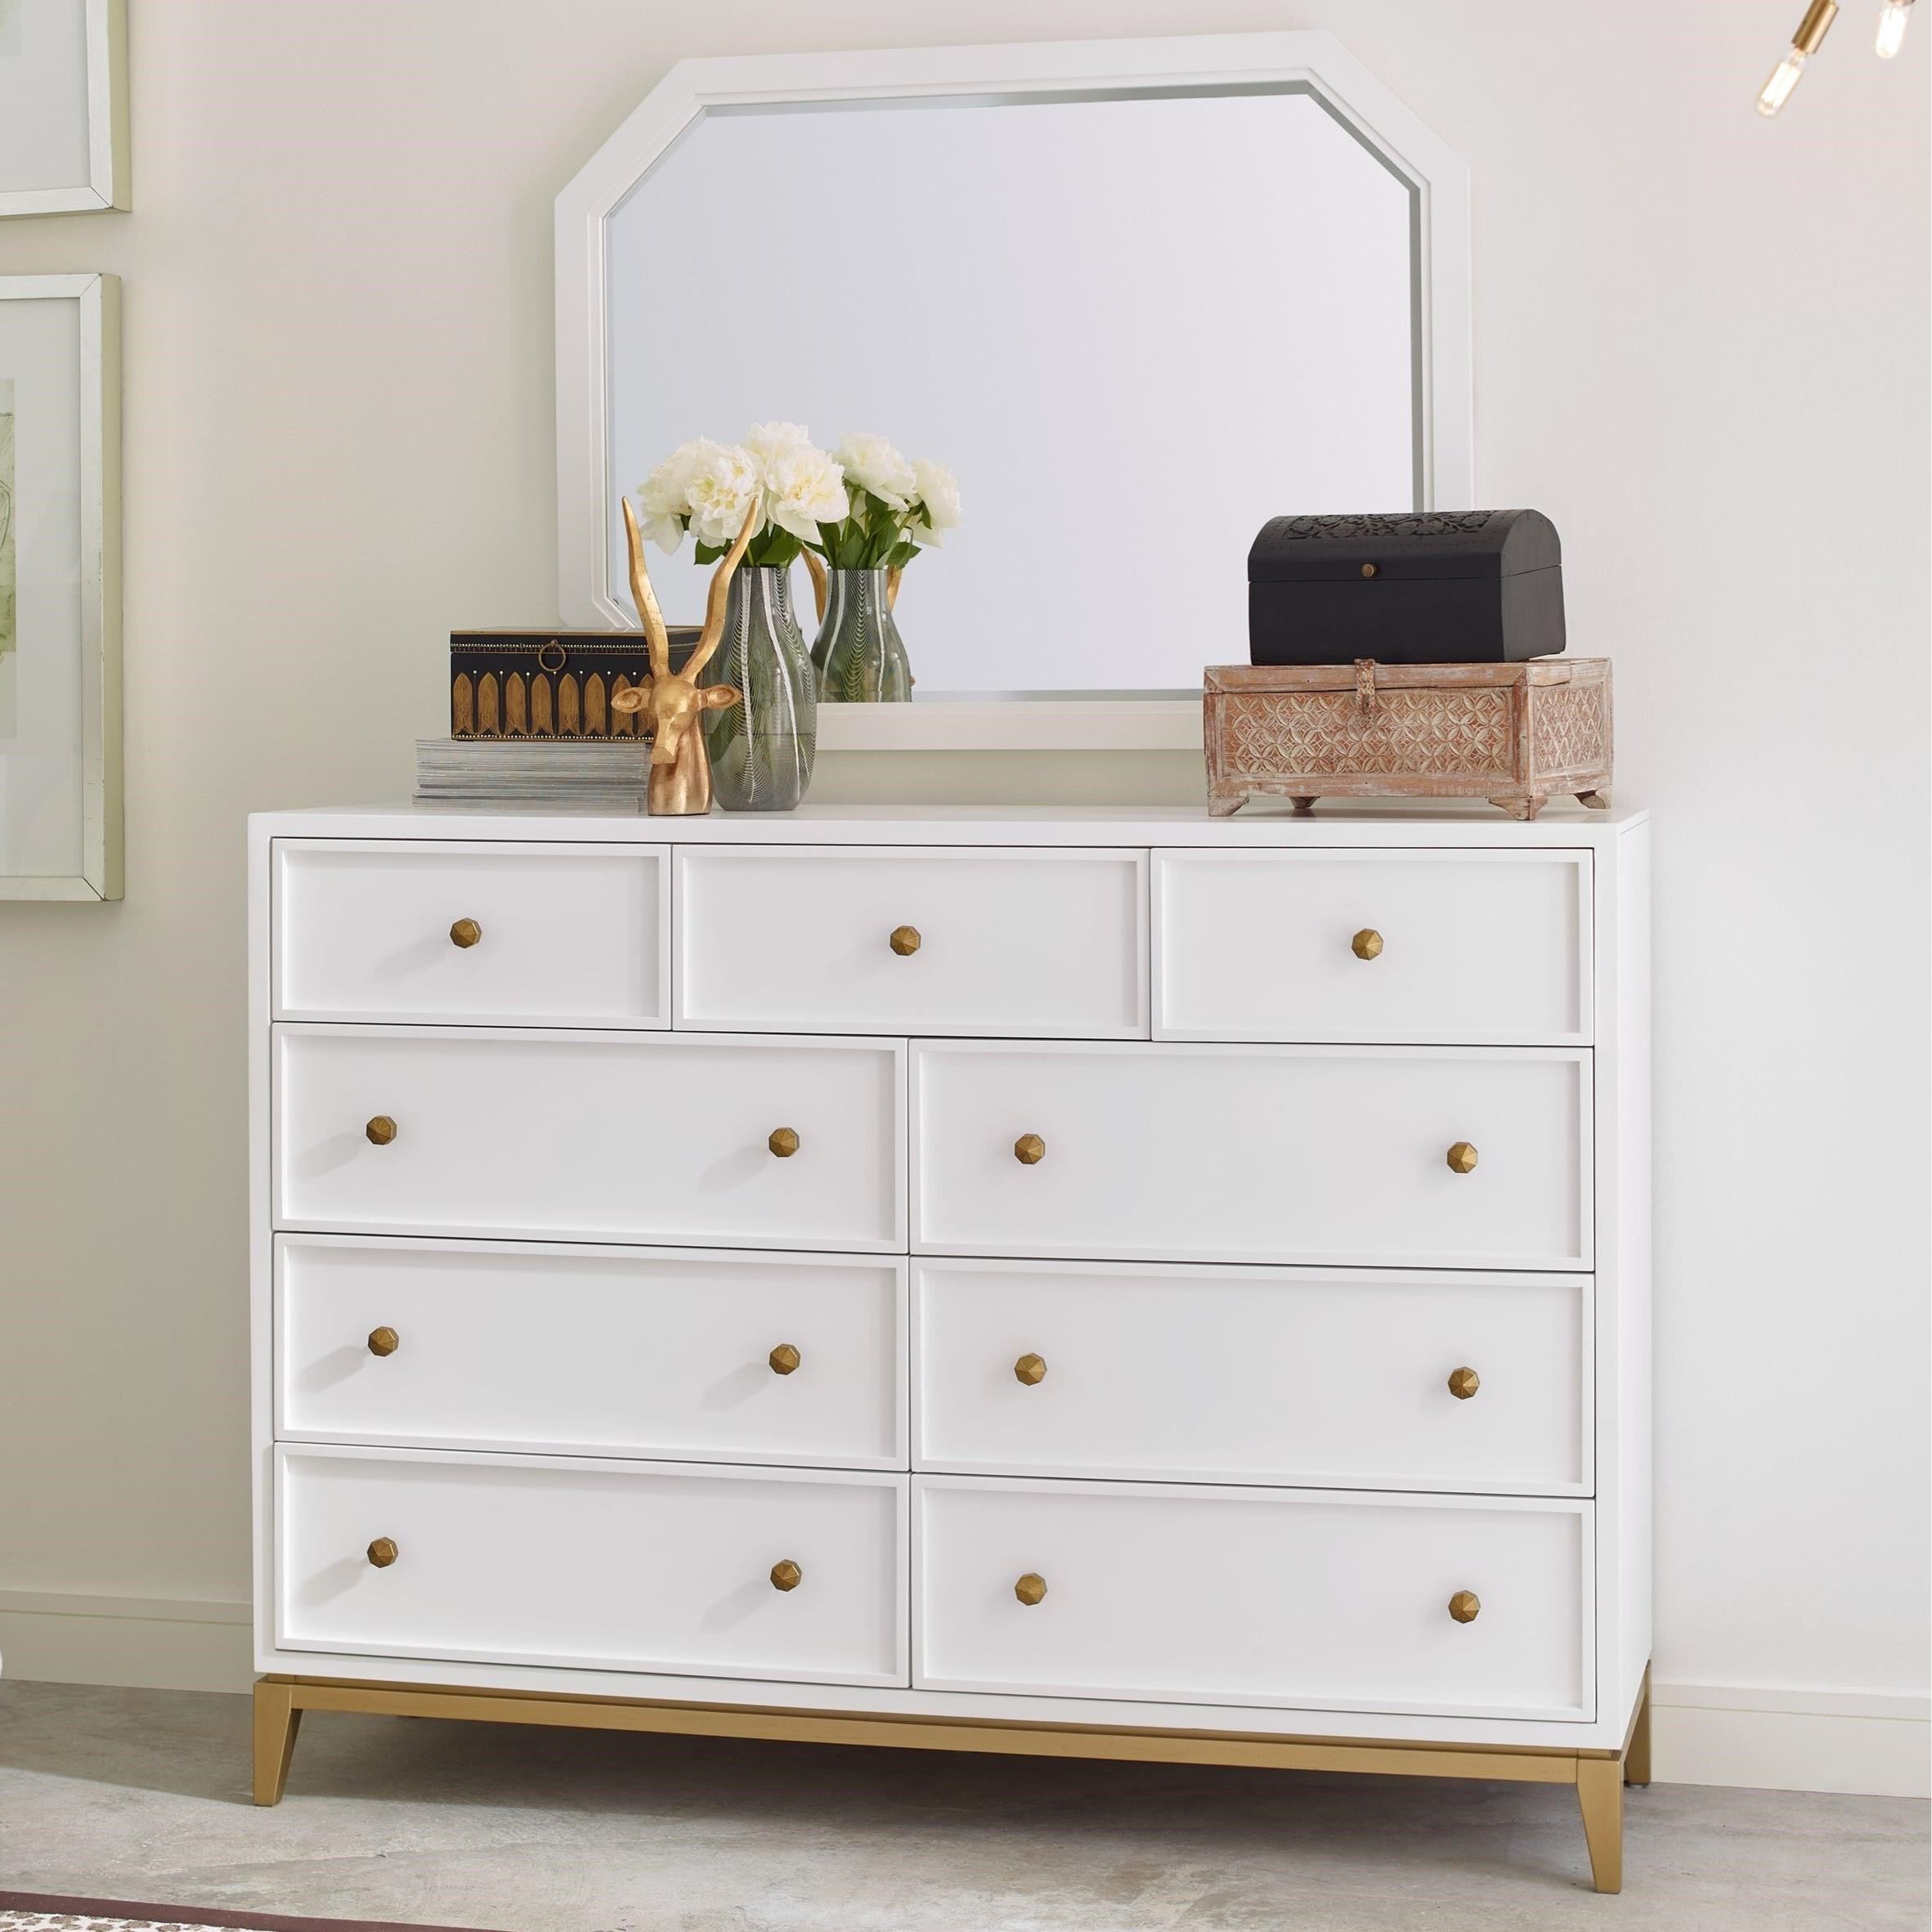 chelsea dresser and mirror set